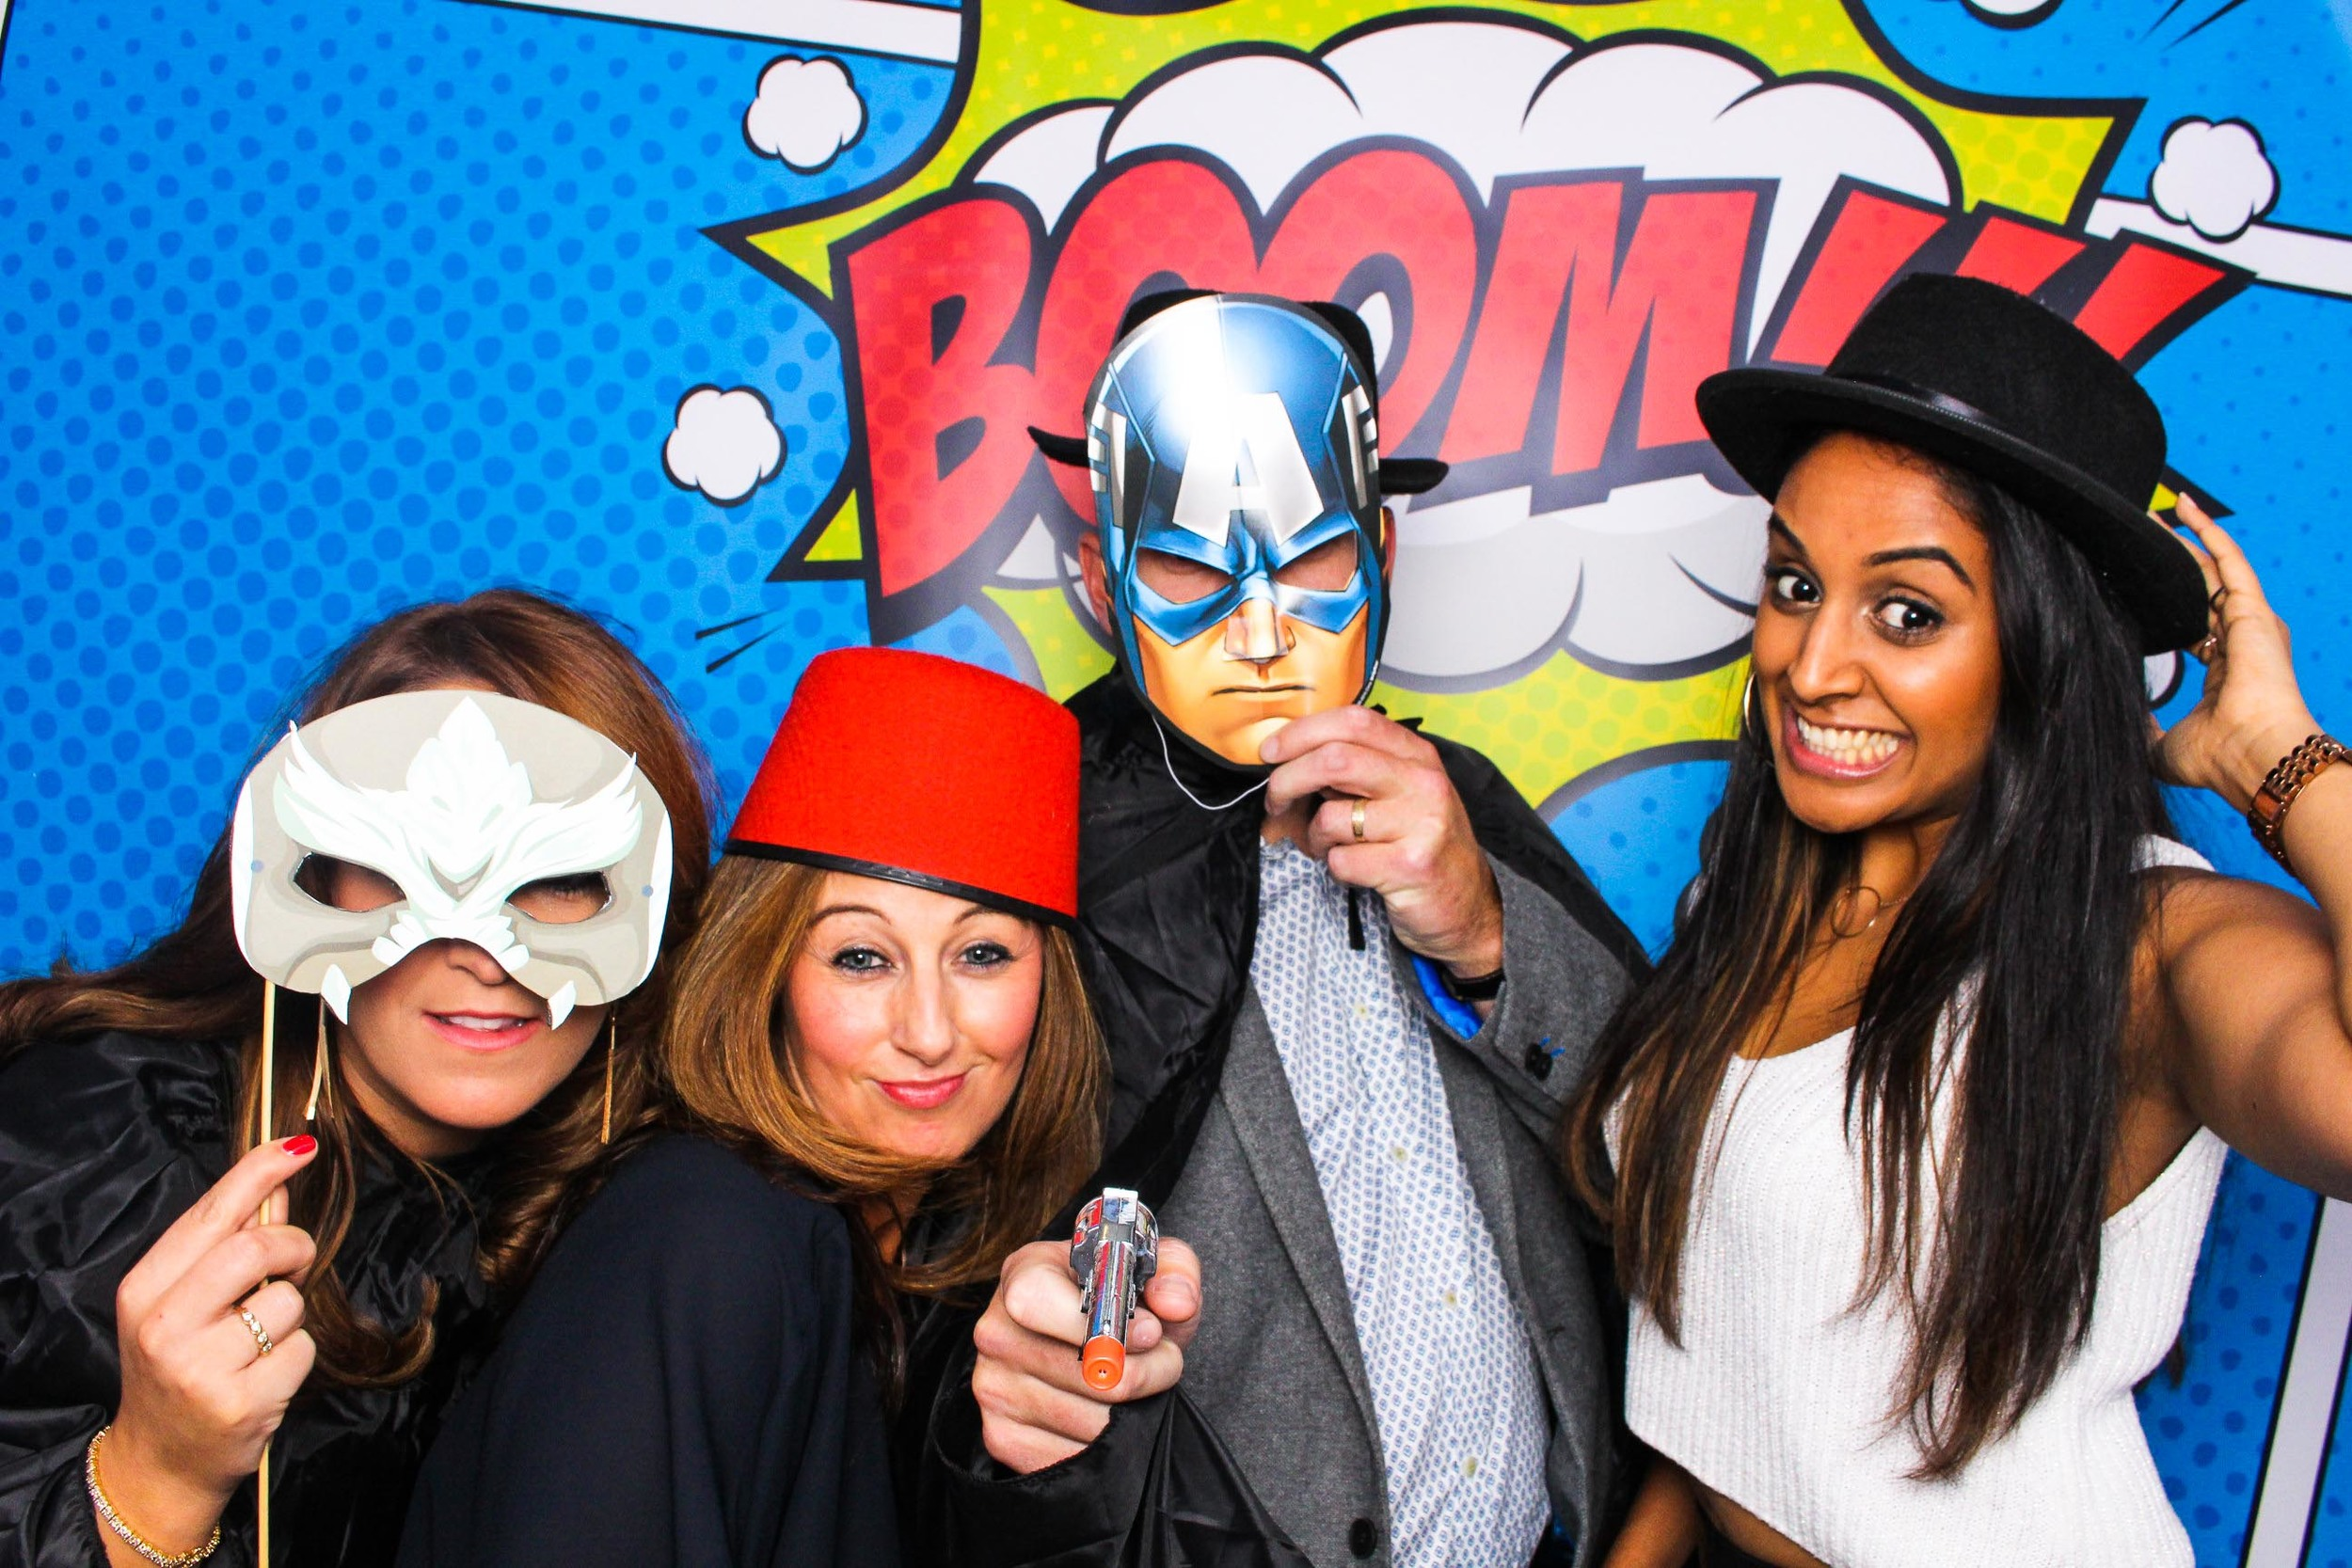 Fotoauto Photo Booth Hire - Shop Direct-264.jpg